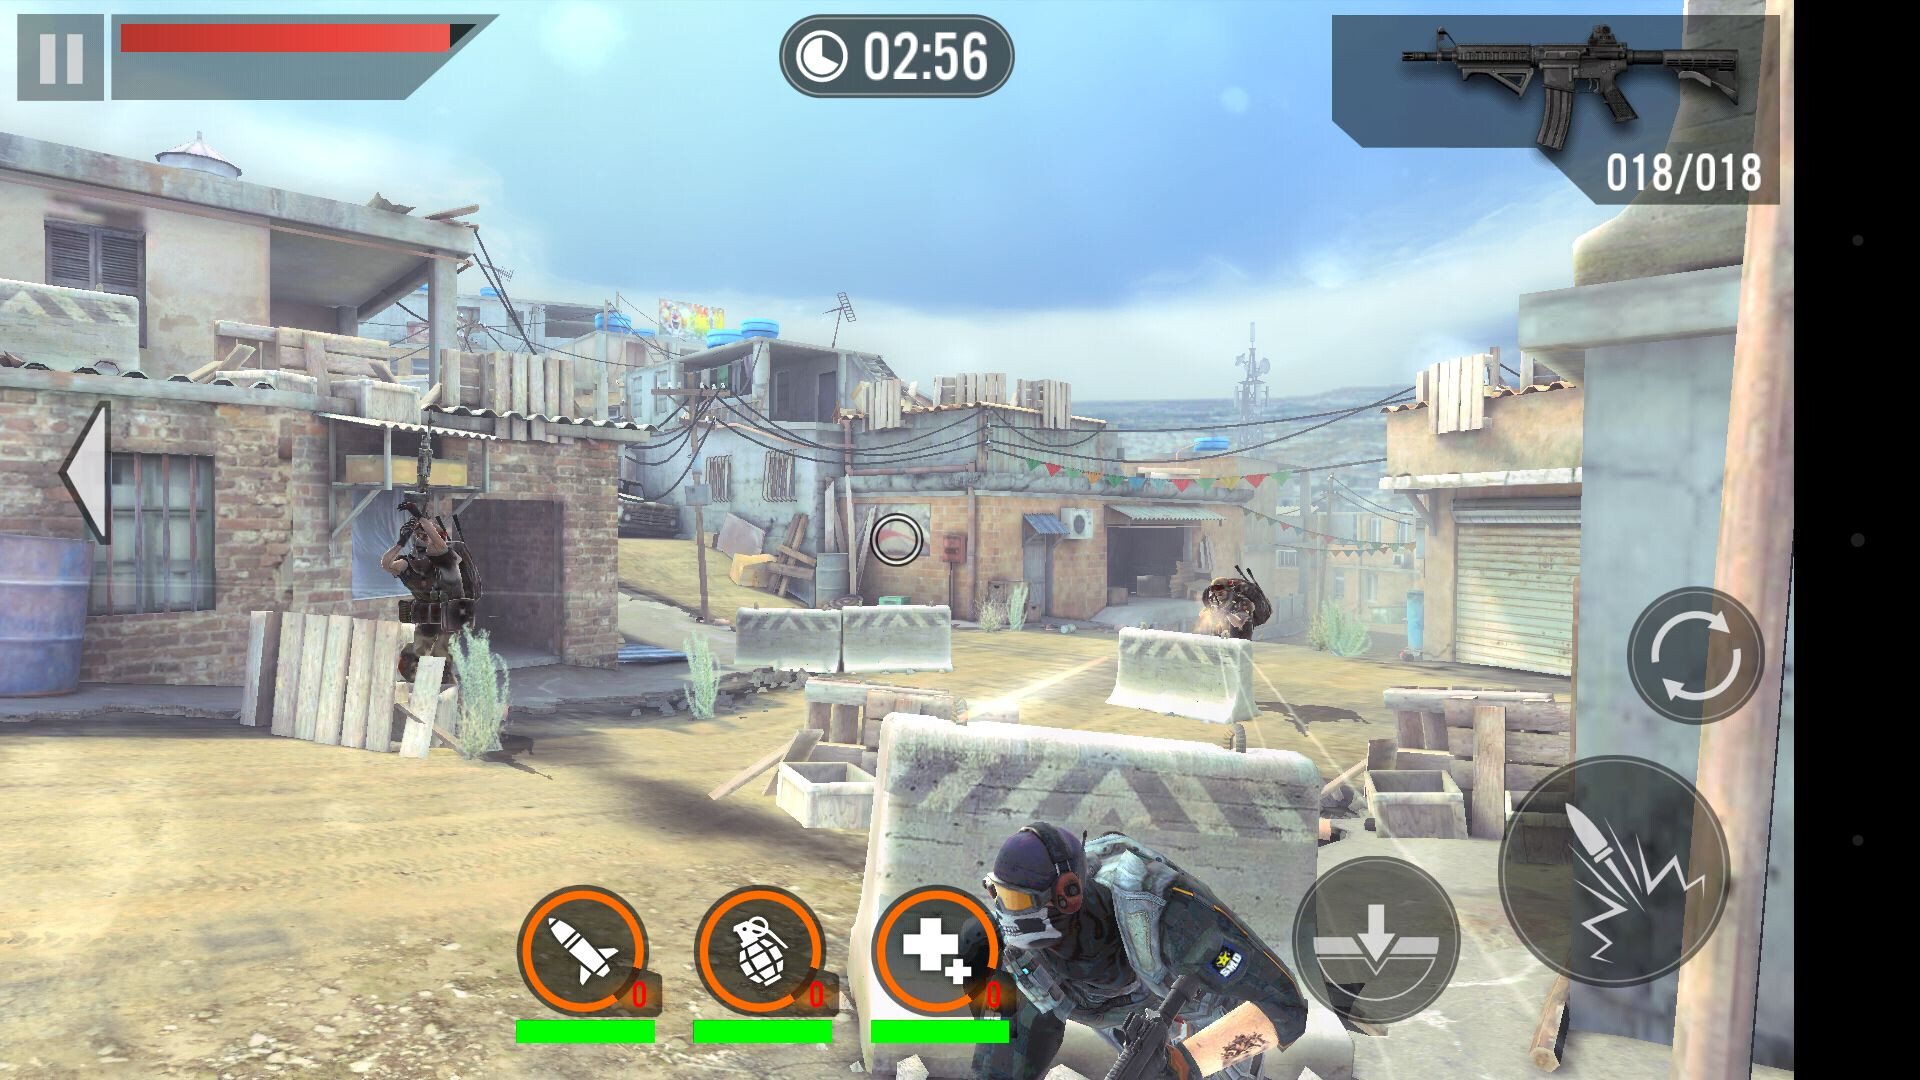 Frontline Commando 2 game review: intense third-person shooter with